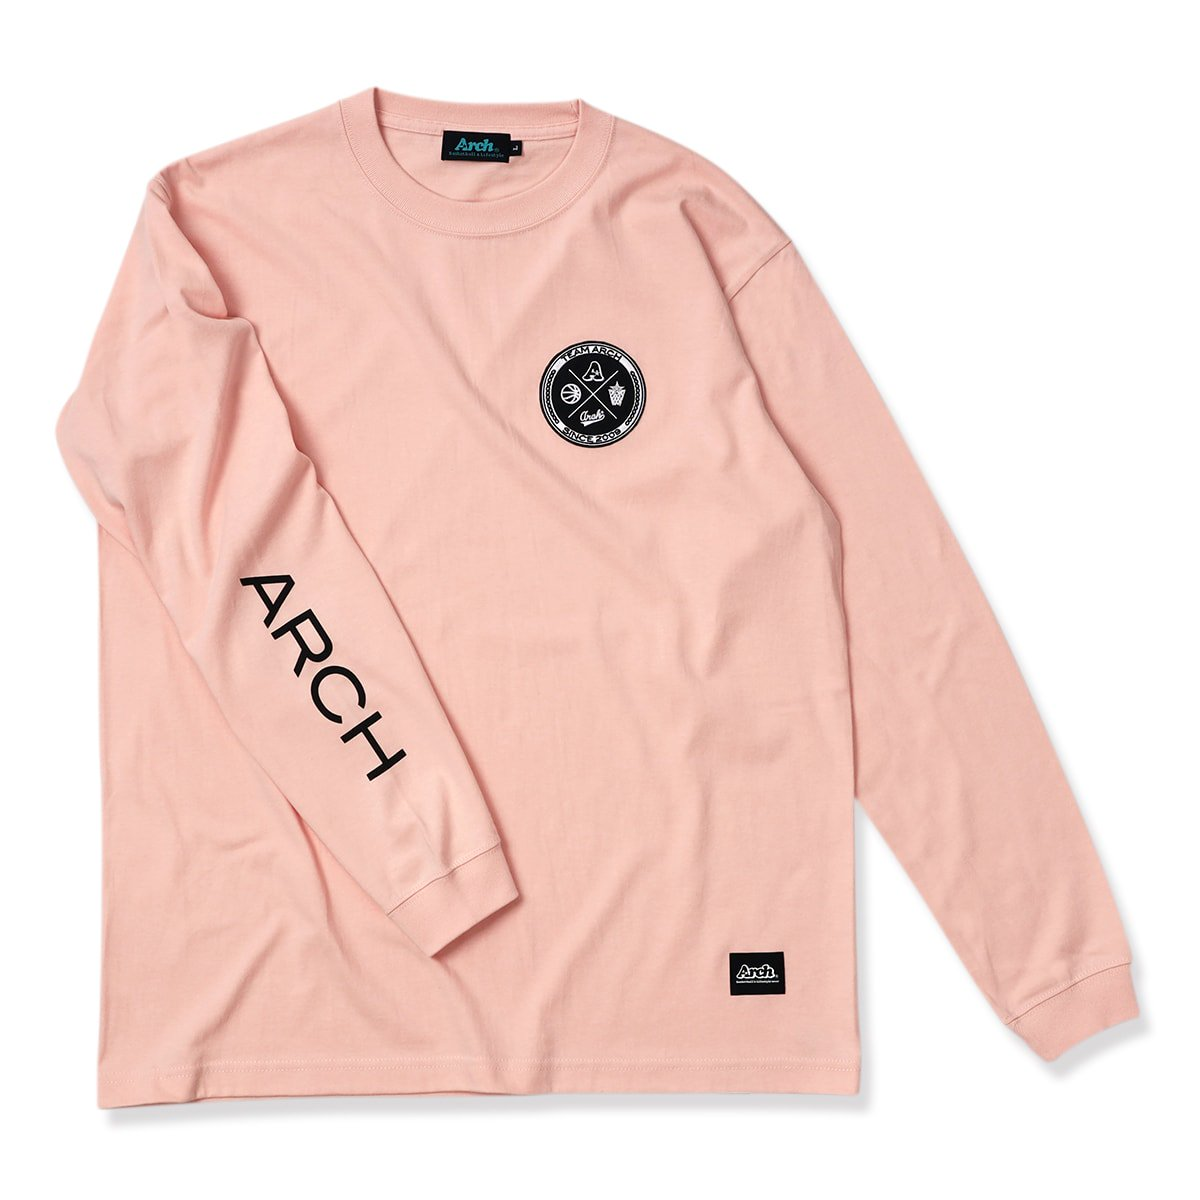 team arch patched L/S tee【pink】